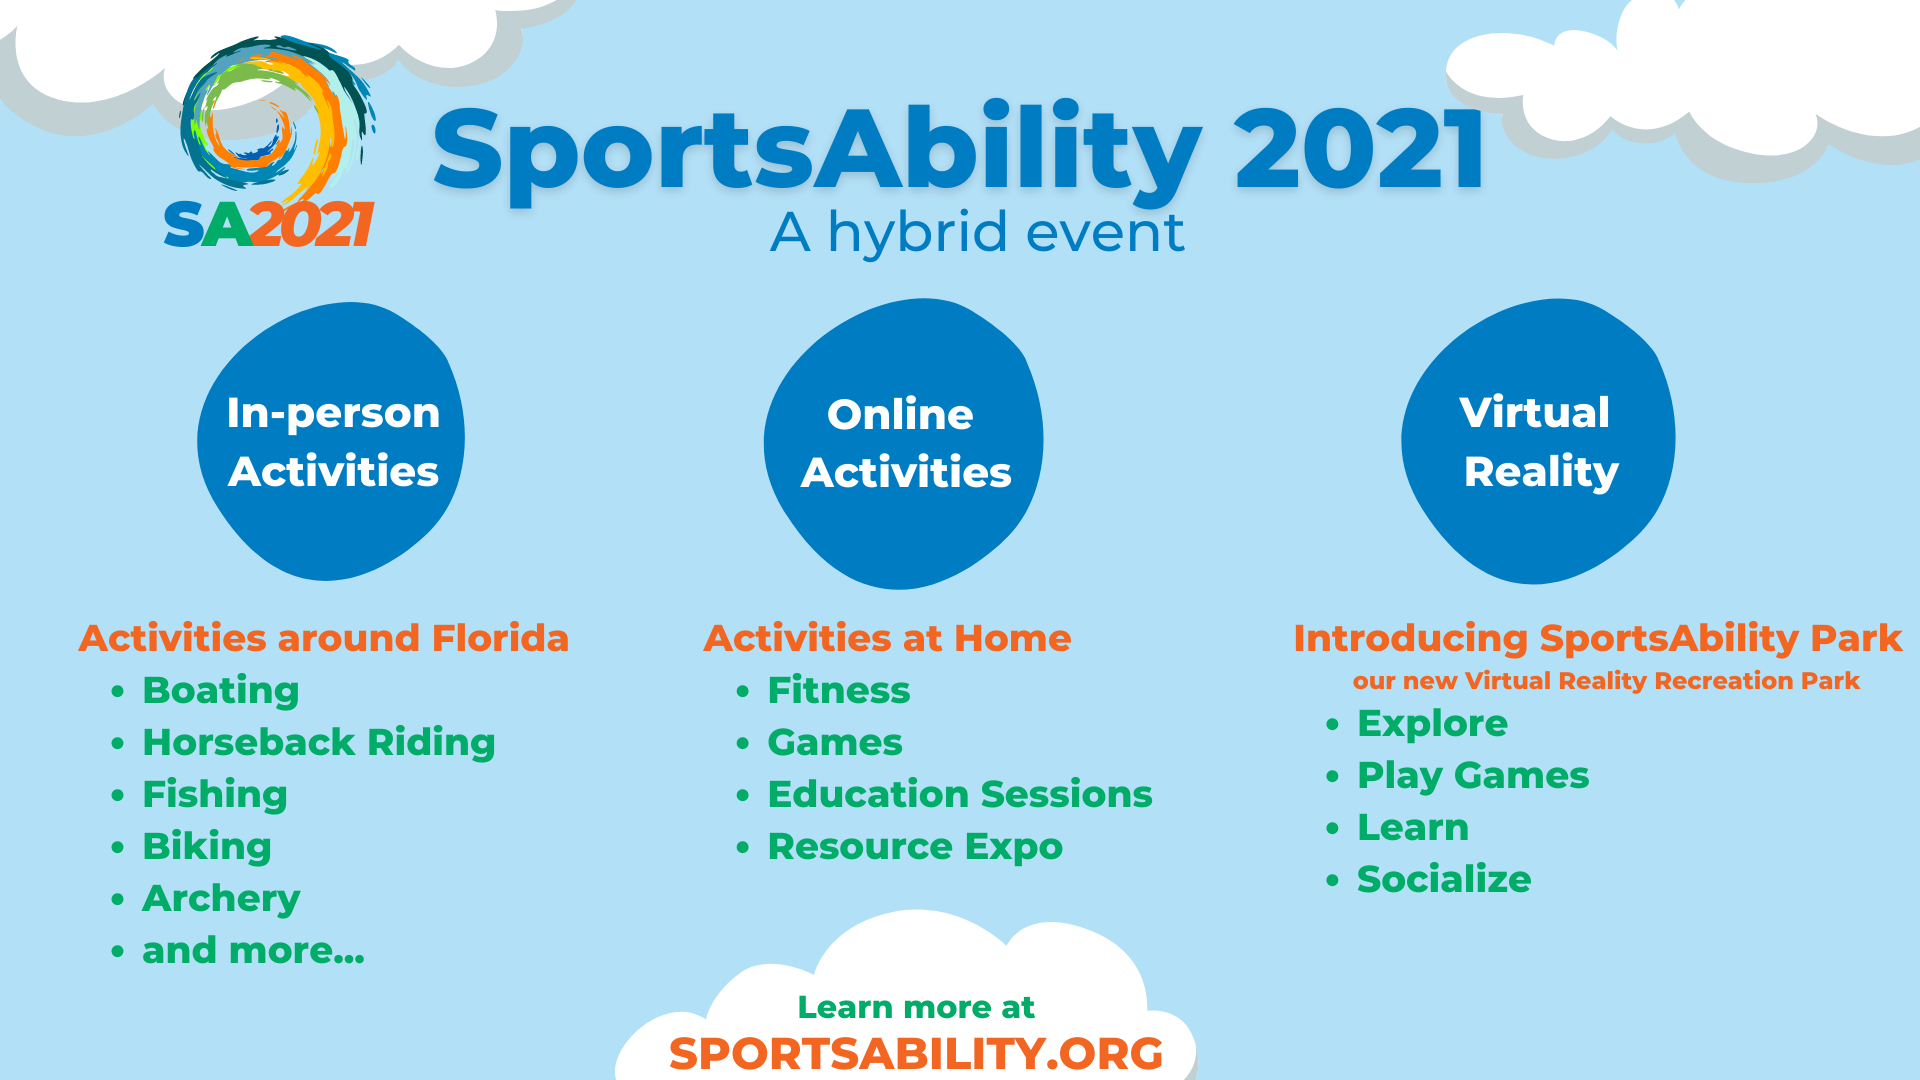 image of SportsAbility Activities slide